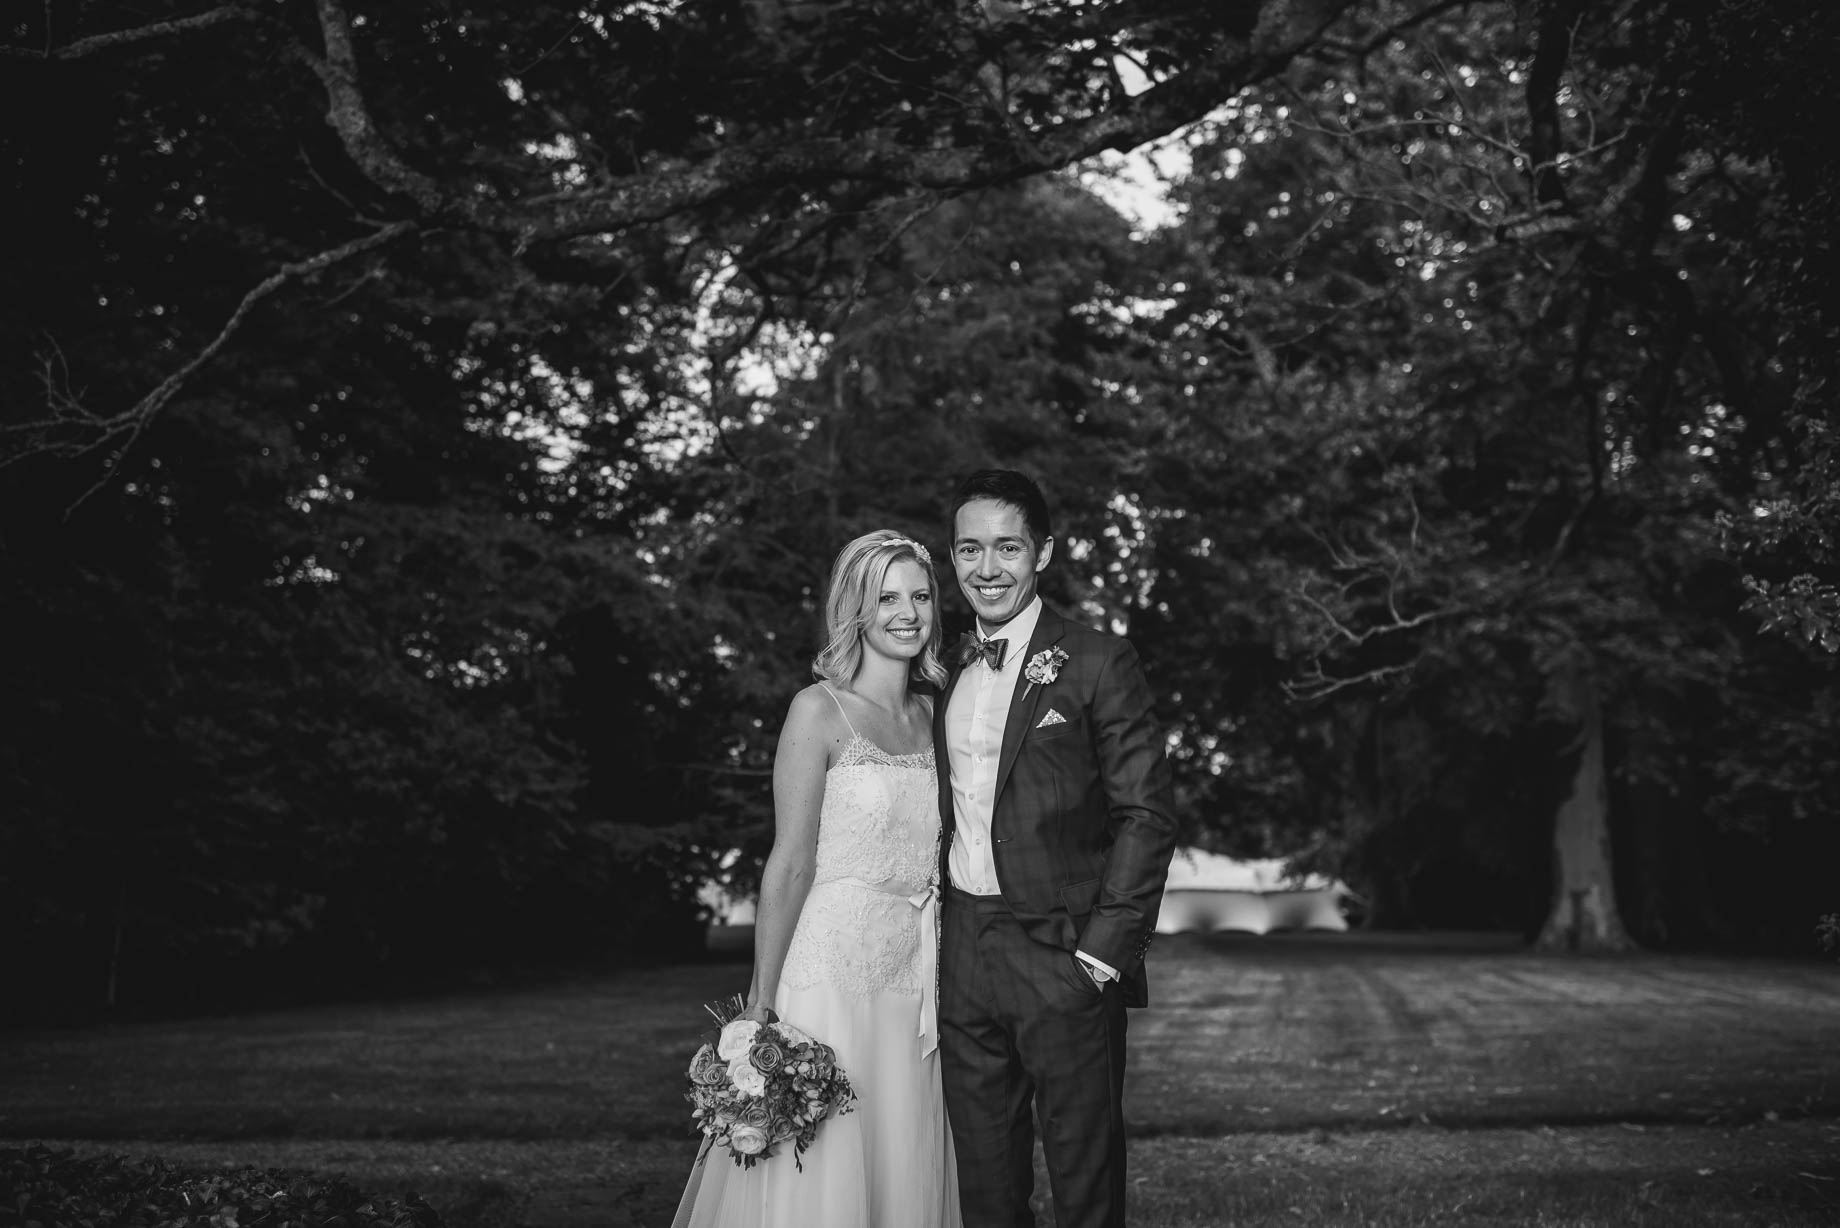 Aynhoe Park wedding photography - Guy Collier - Becky and Nick (174 of 233)